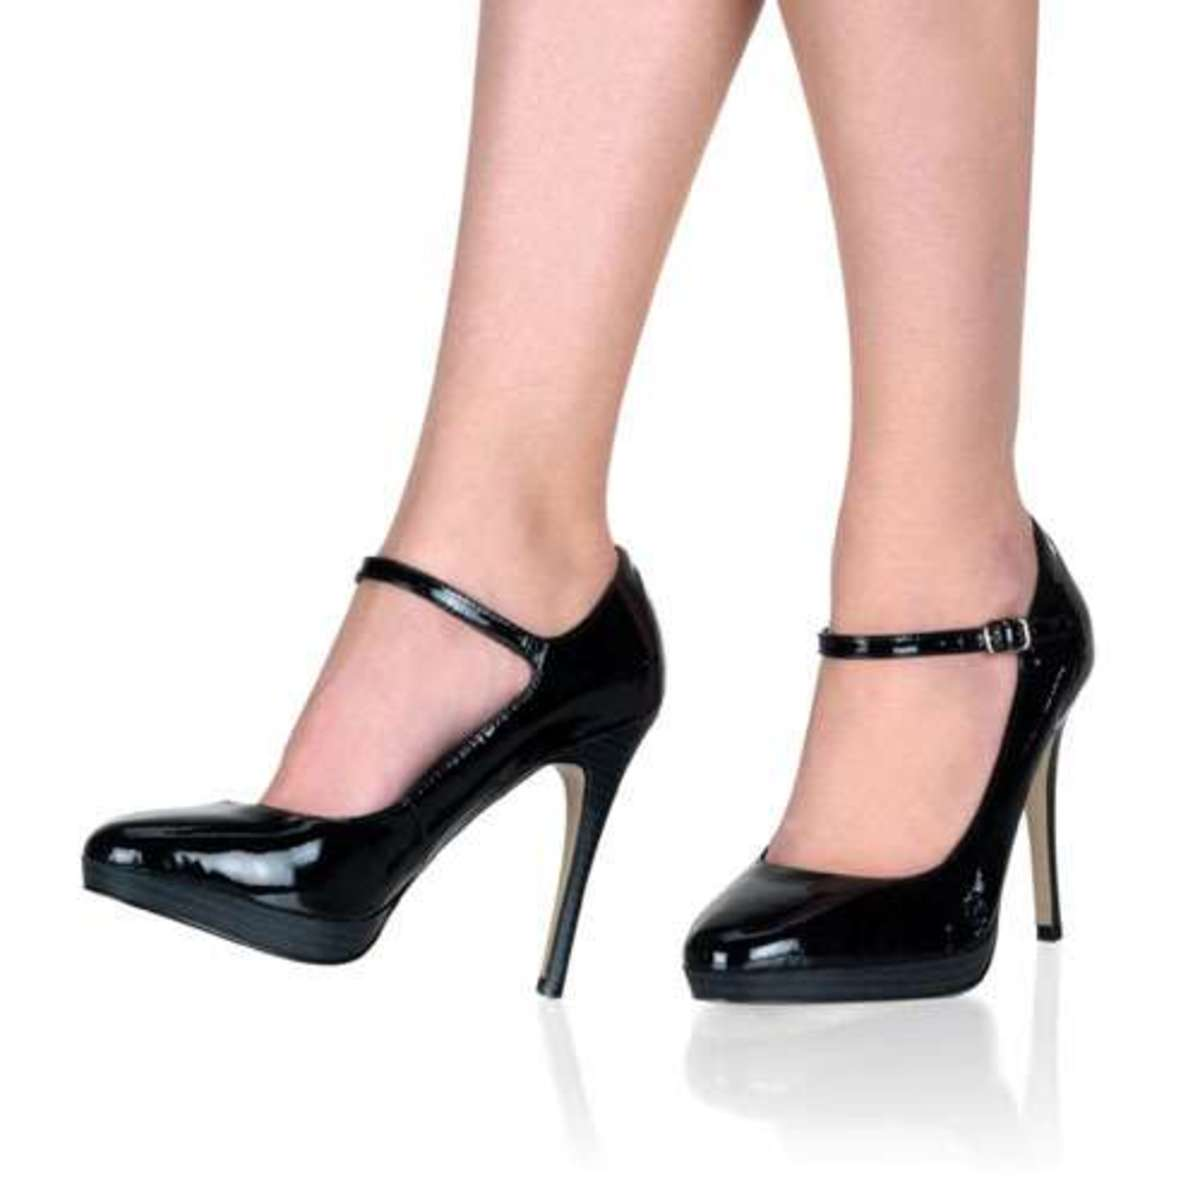 An example of fashion heels that aren't official Latin dance shoes that can be worn for salsa. (this heel would be considered too high for dancing, but the Mary-Jane style with the strap that secures the shoe to your foot is something you should get)